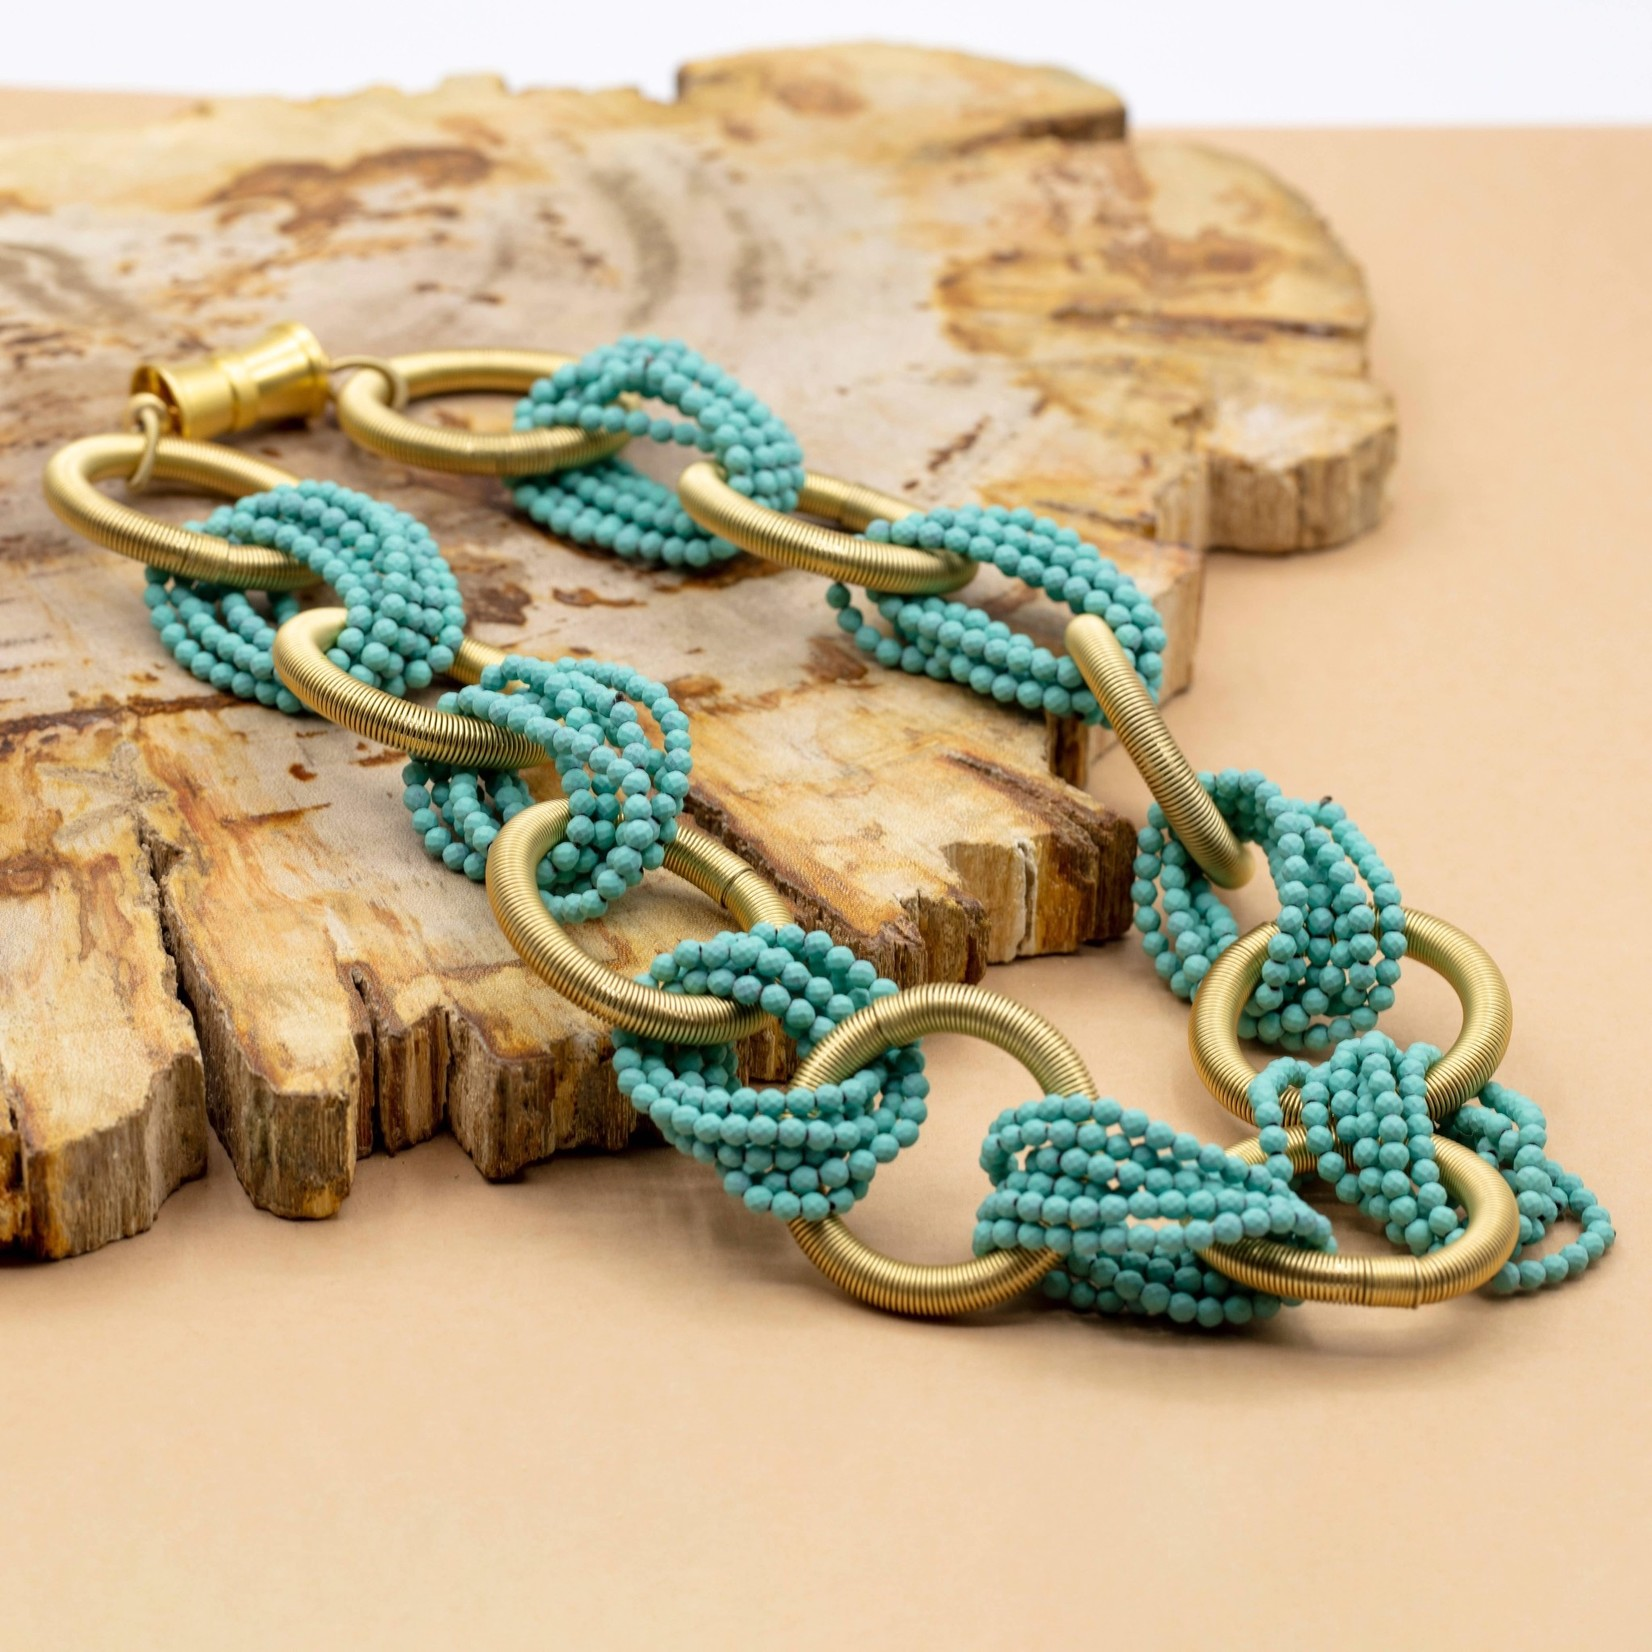 Sea Lily Necklace of Gold Piano Wire Rings w/Connecting Turqoise Hematite